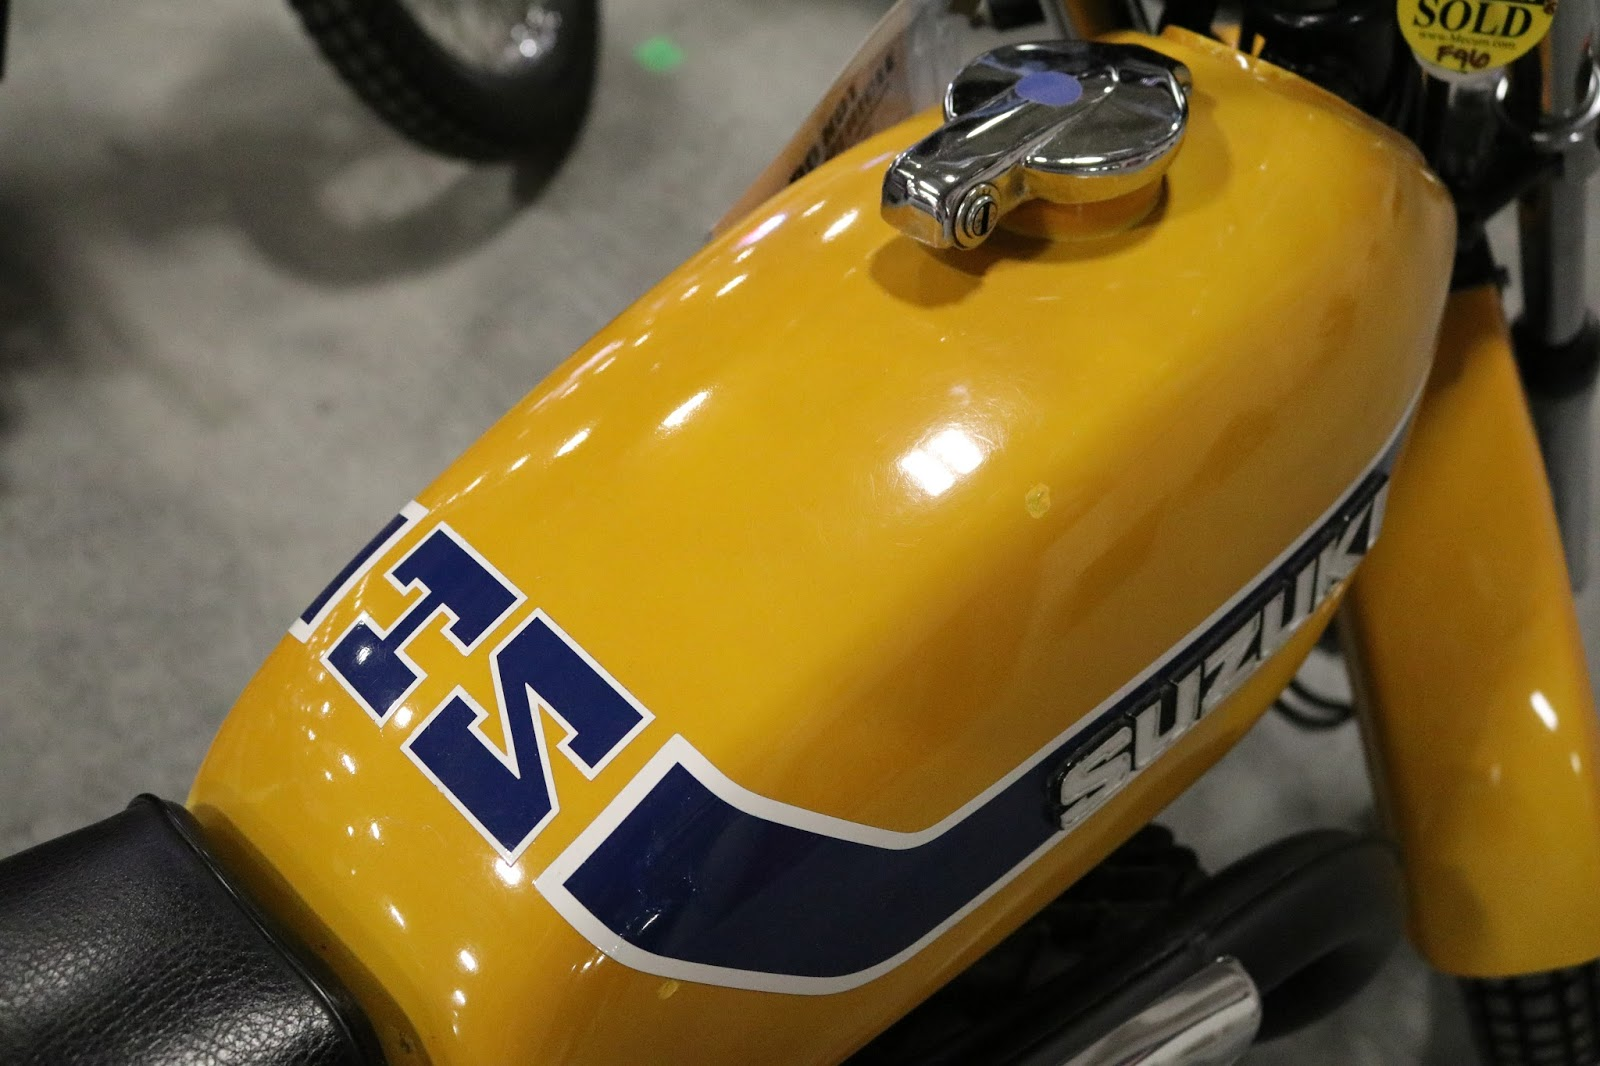 OldMotoDude: 1973 Suzuki TS185 sold for $3,250 at the 2017